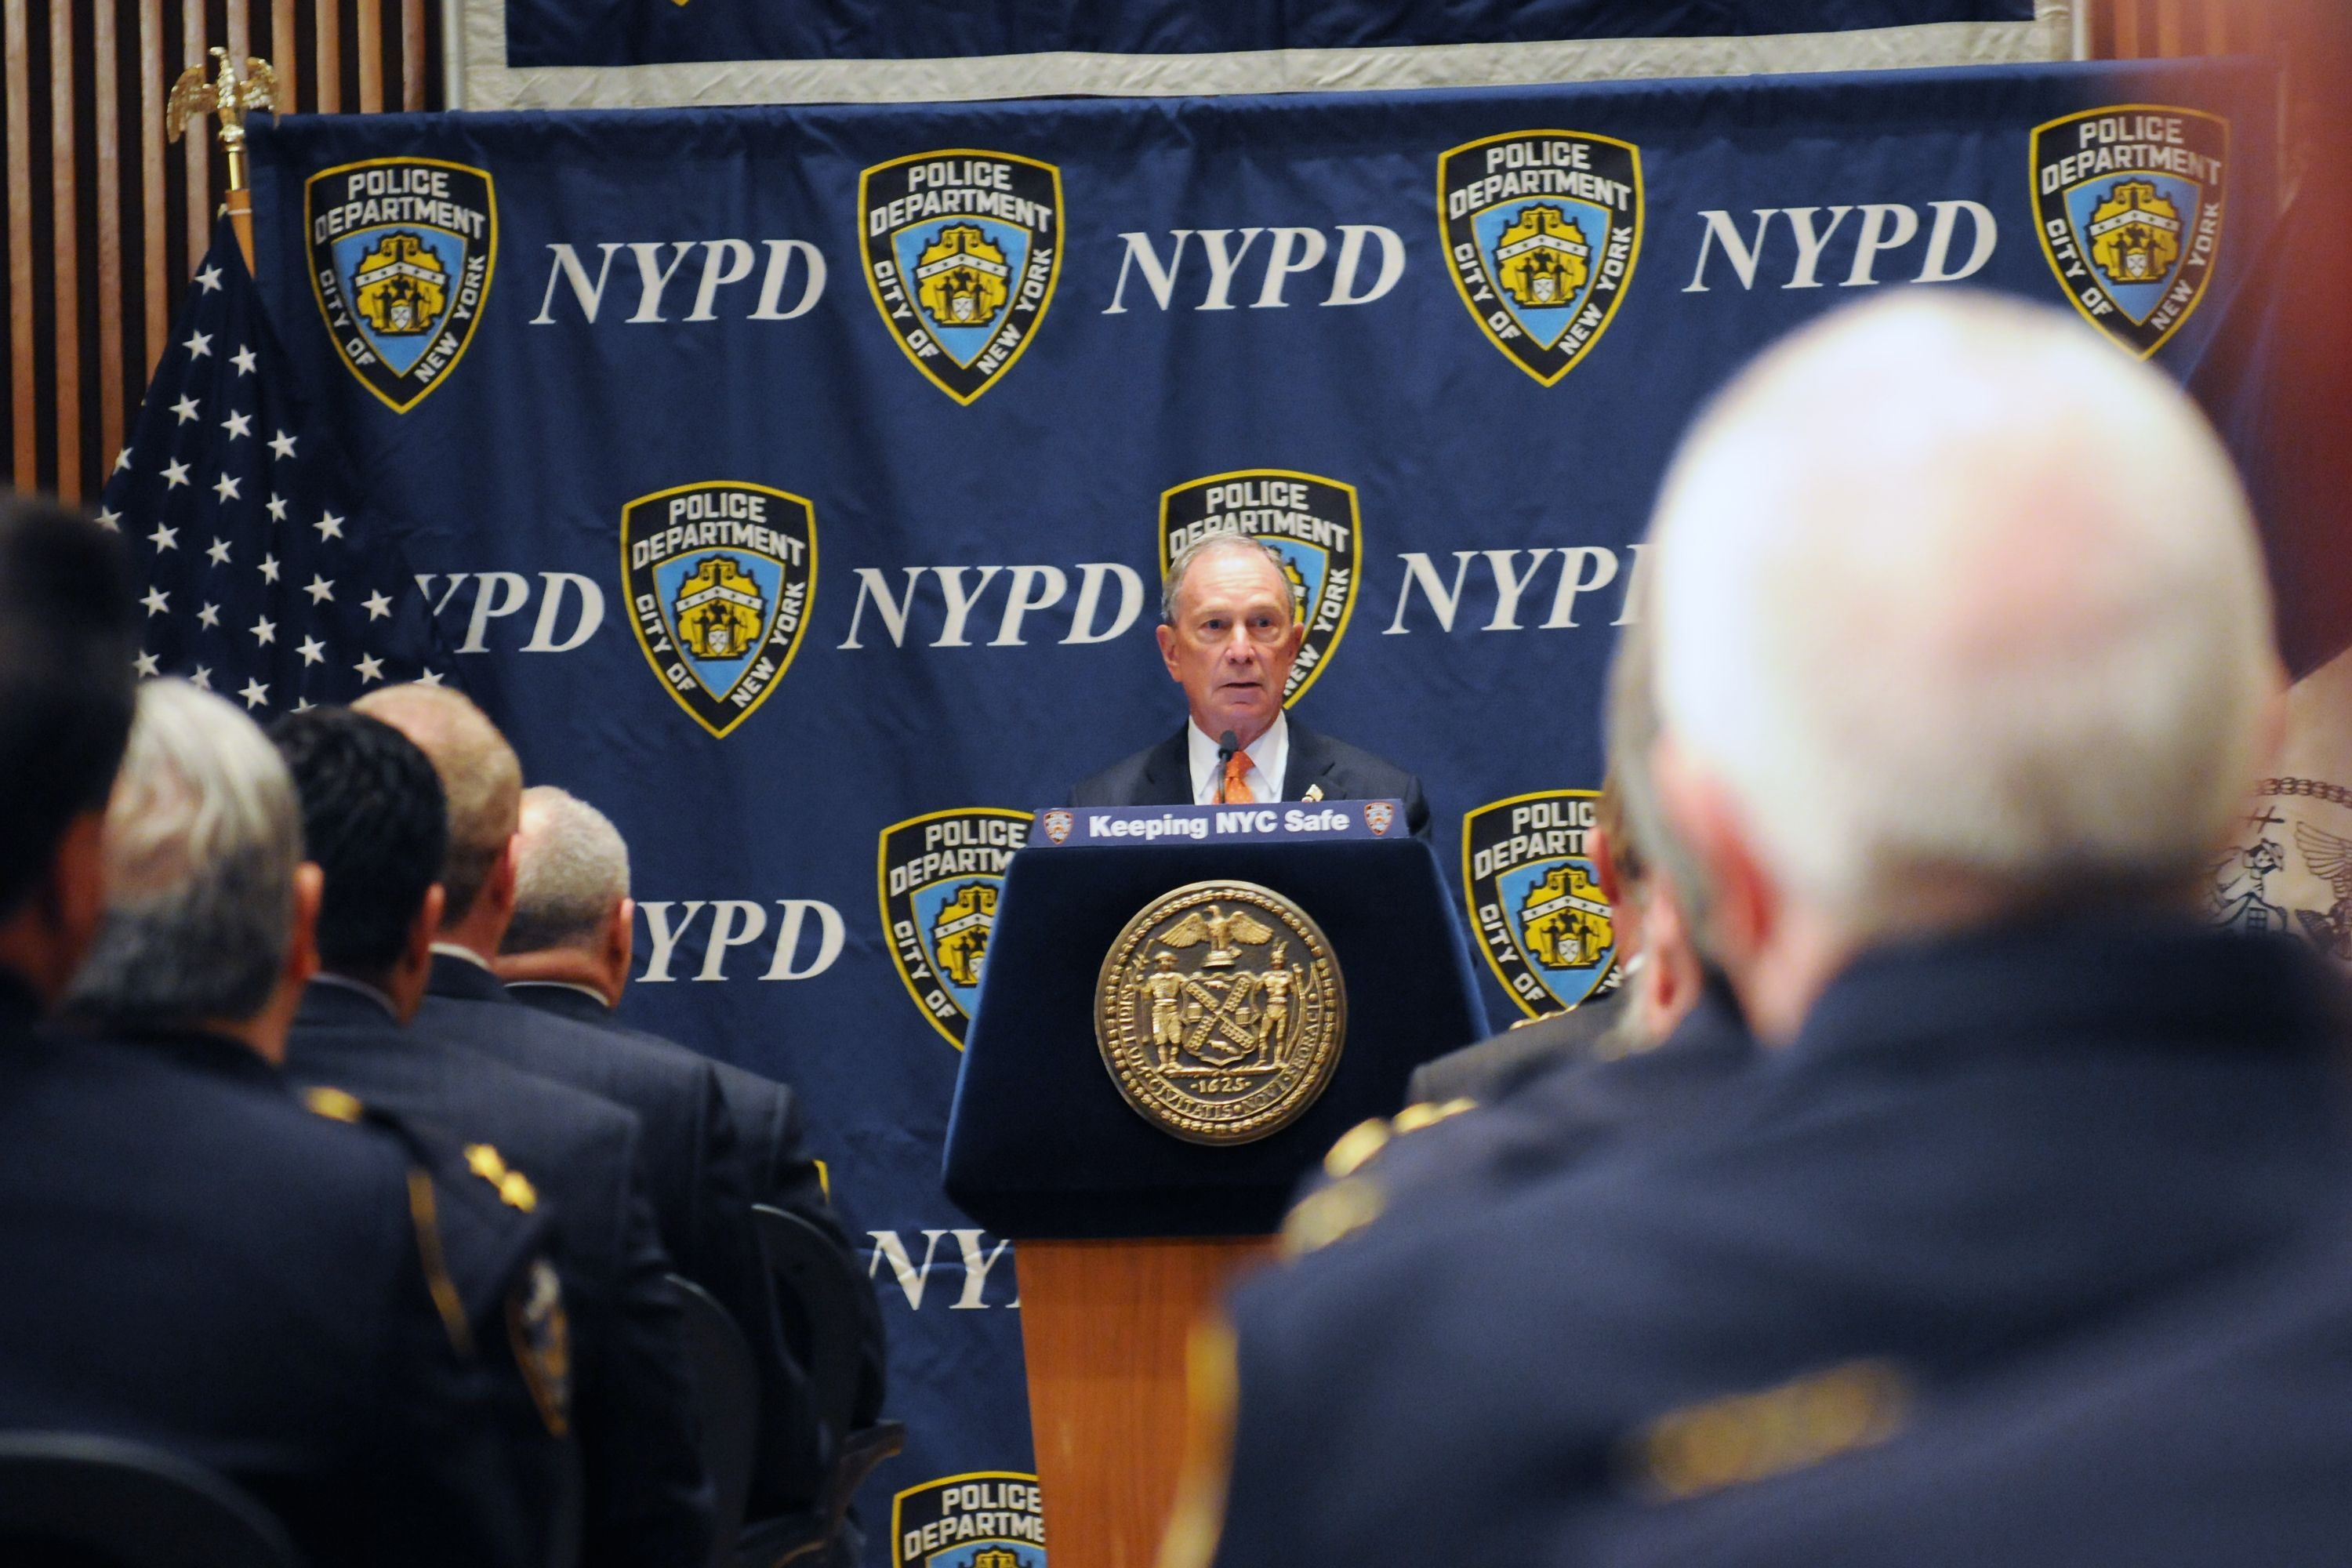 Then-Mayor Michael Bloomberg speaks in defense of stop and frisk to NYPD officials.